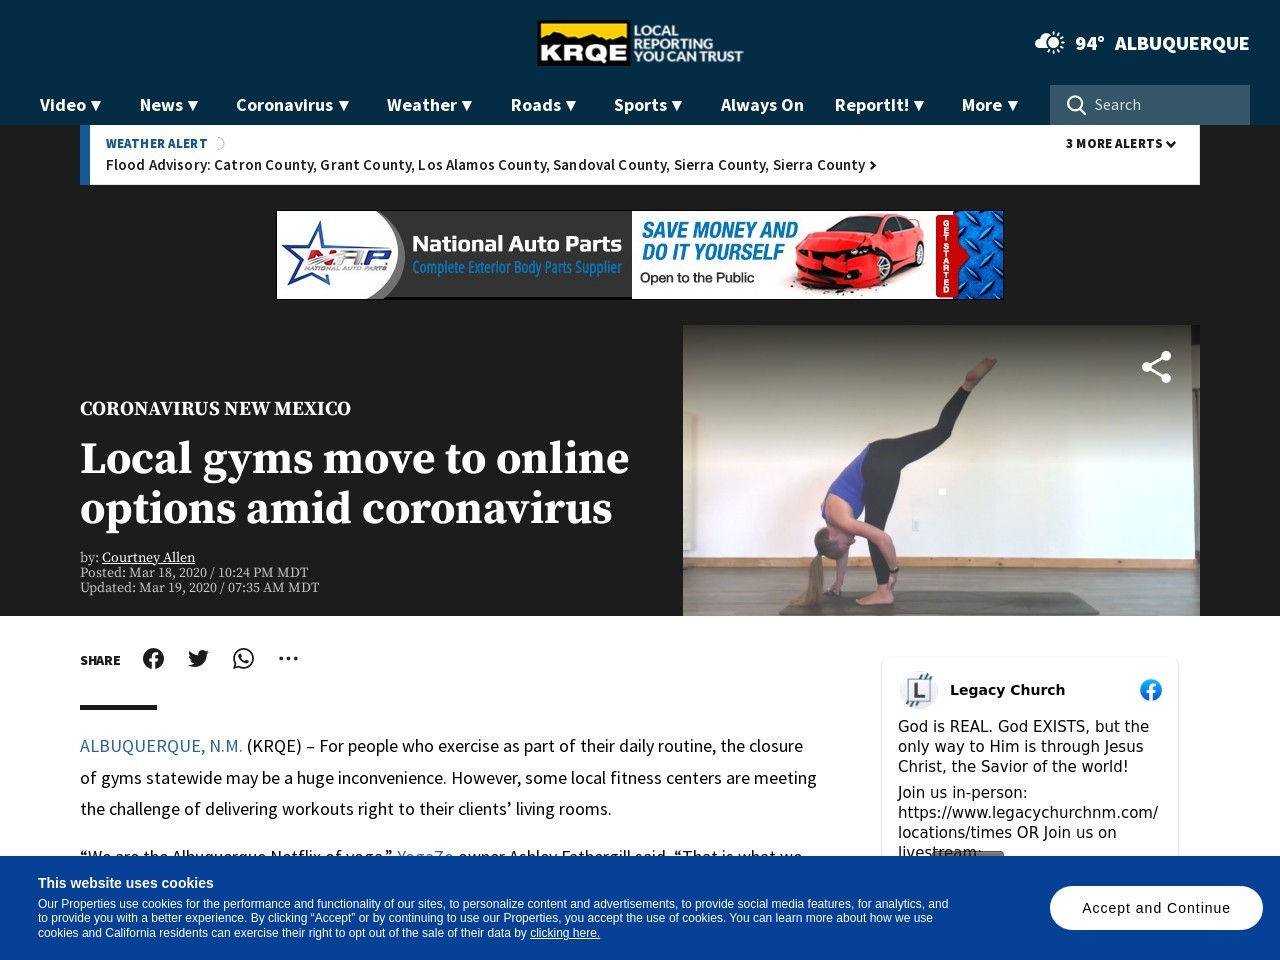 Local gyms move to online options amid coronavirus